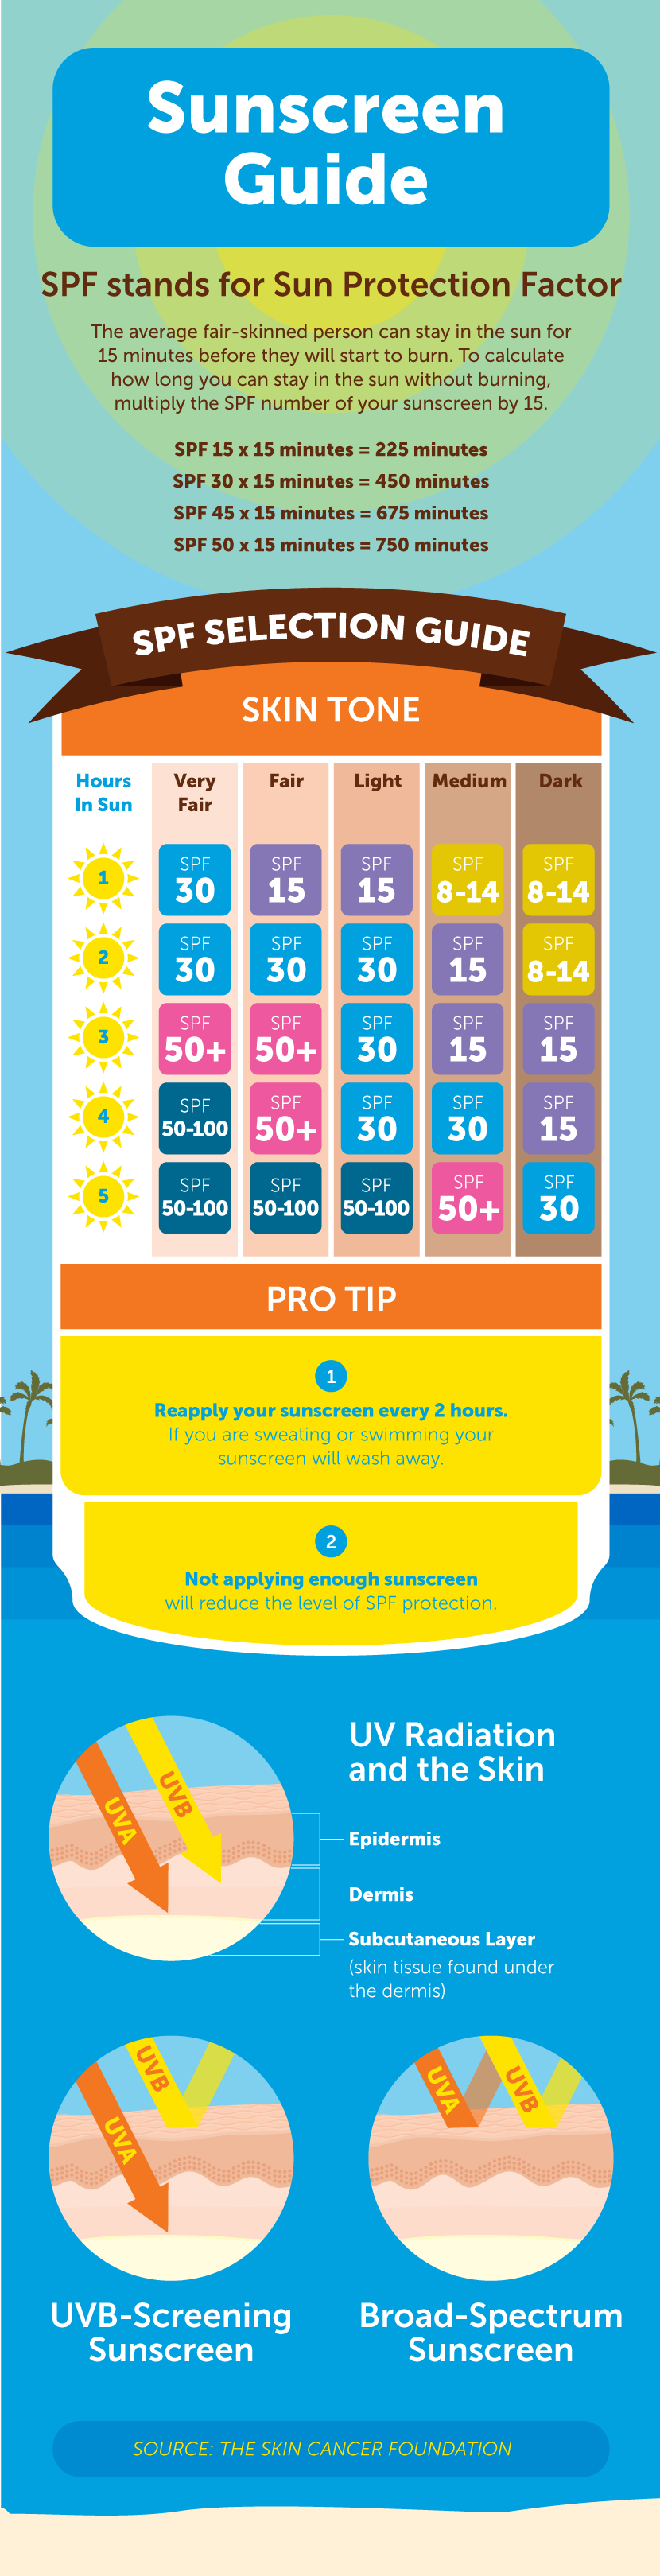 Sunscreen Guide - Don't Get Burned: Identifying and Preventing Sun Damage